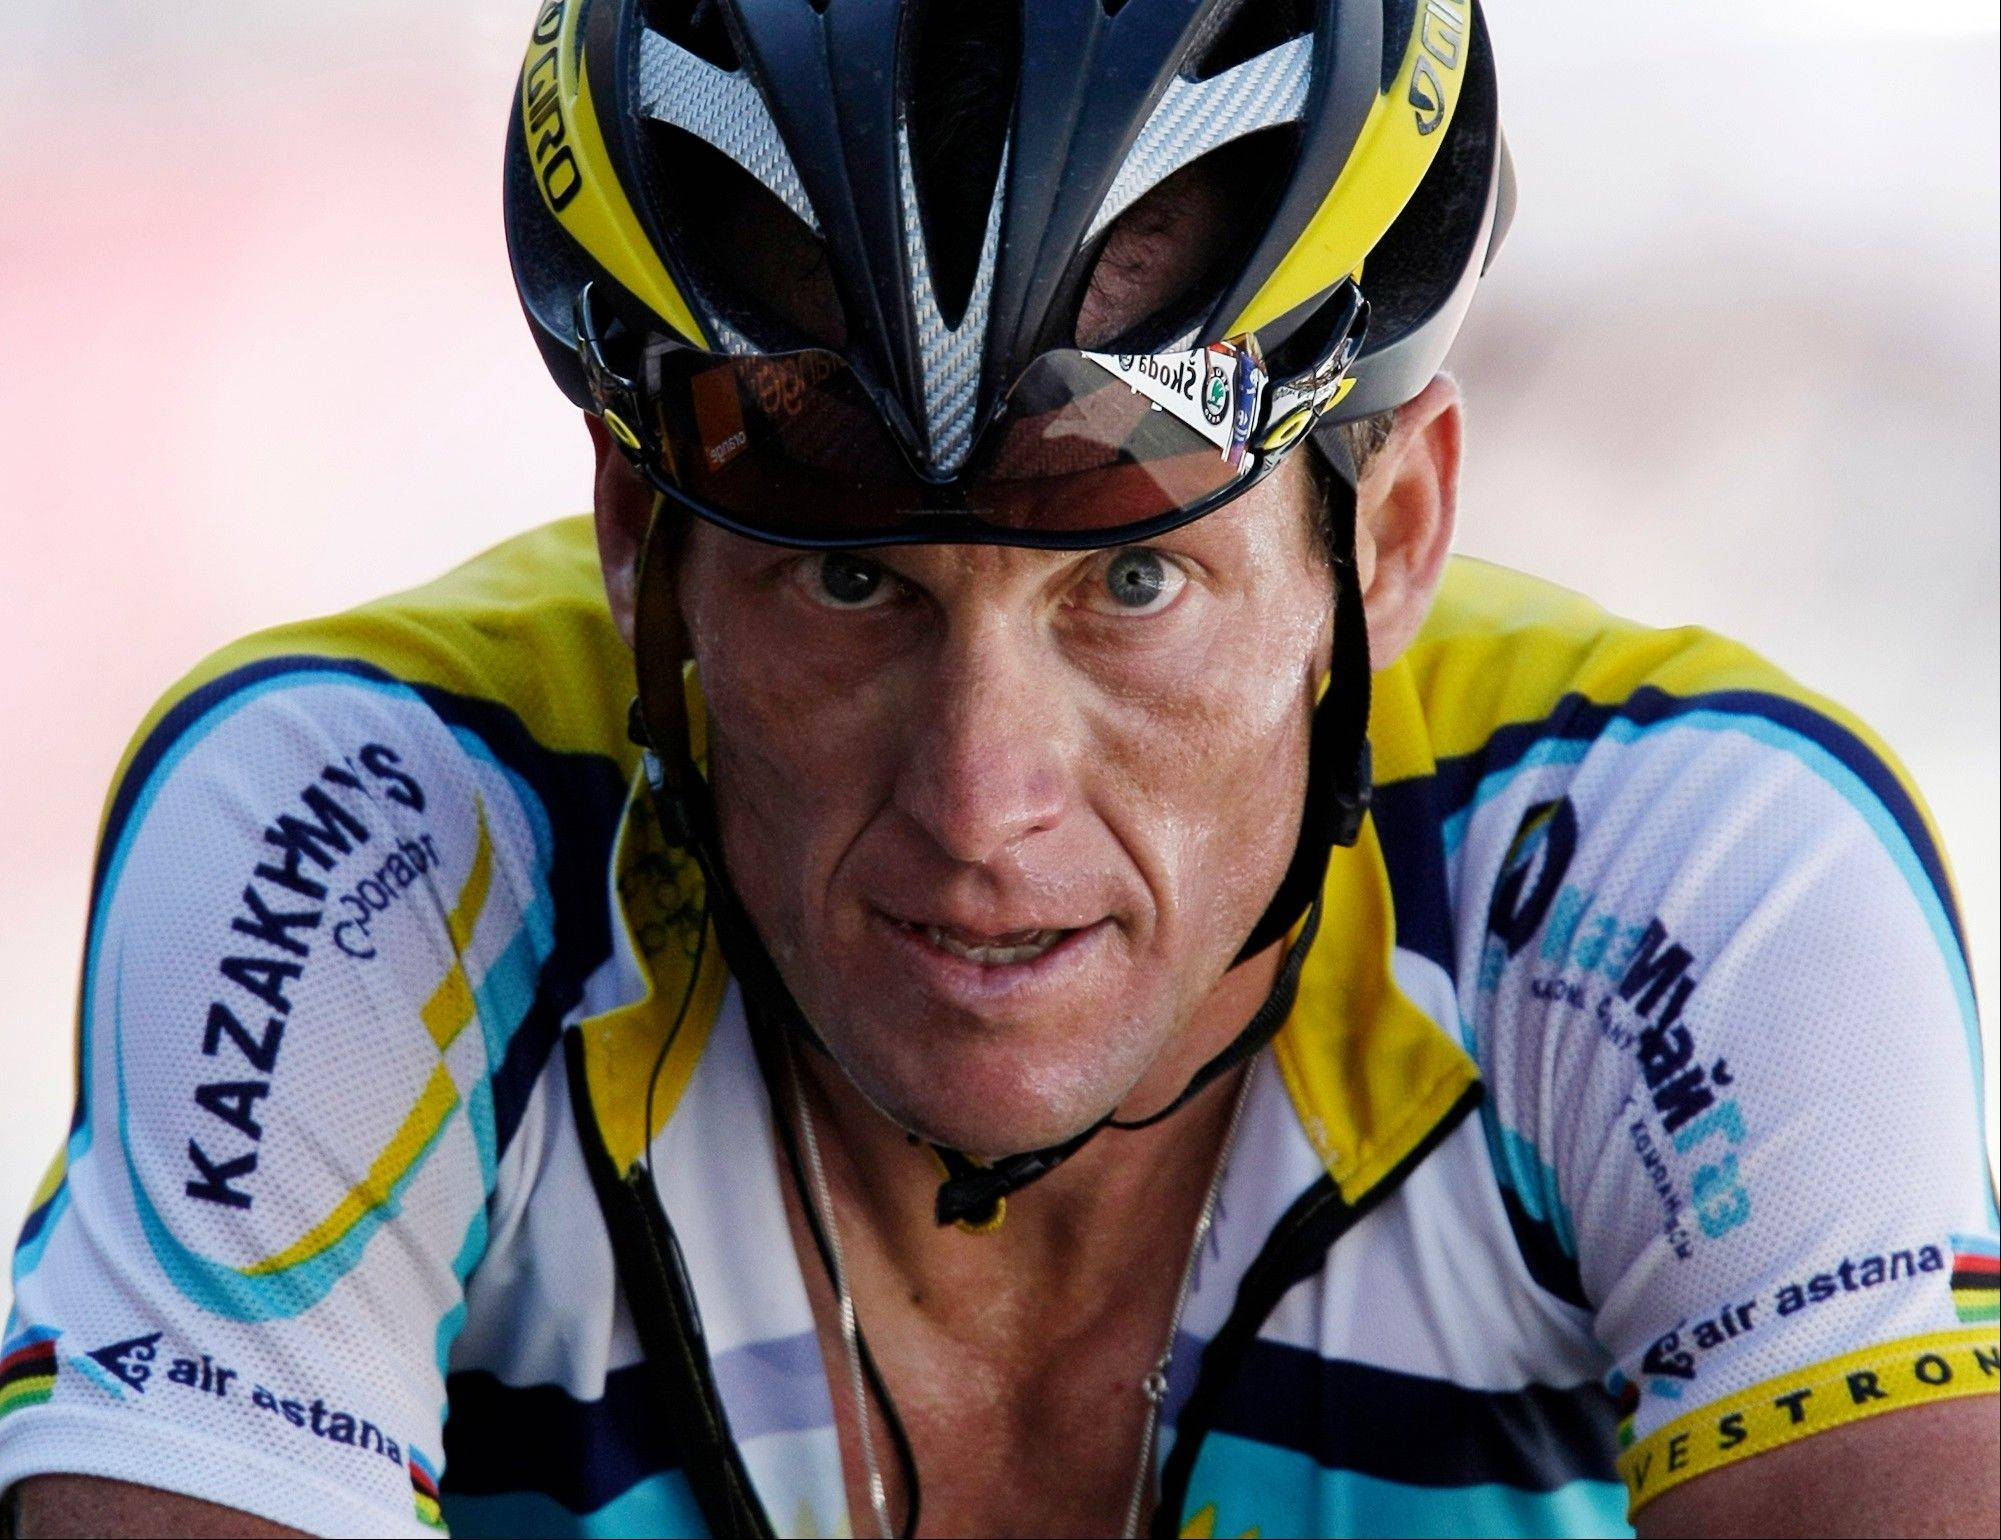 Armstrong to Oprah: 'I'm a flawed character'